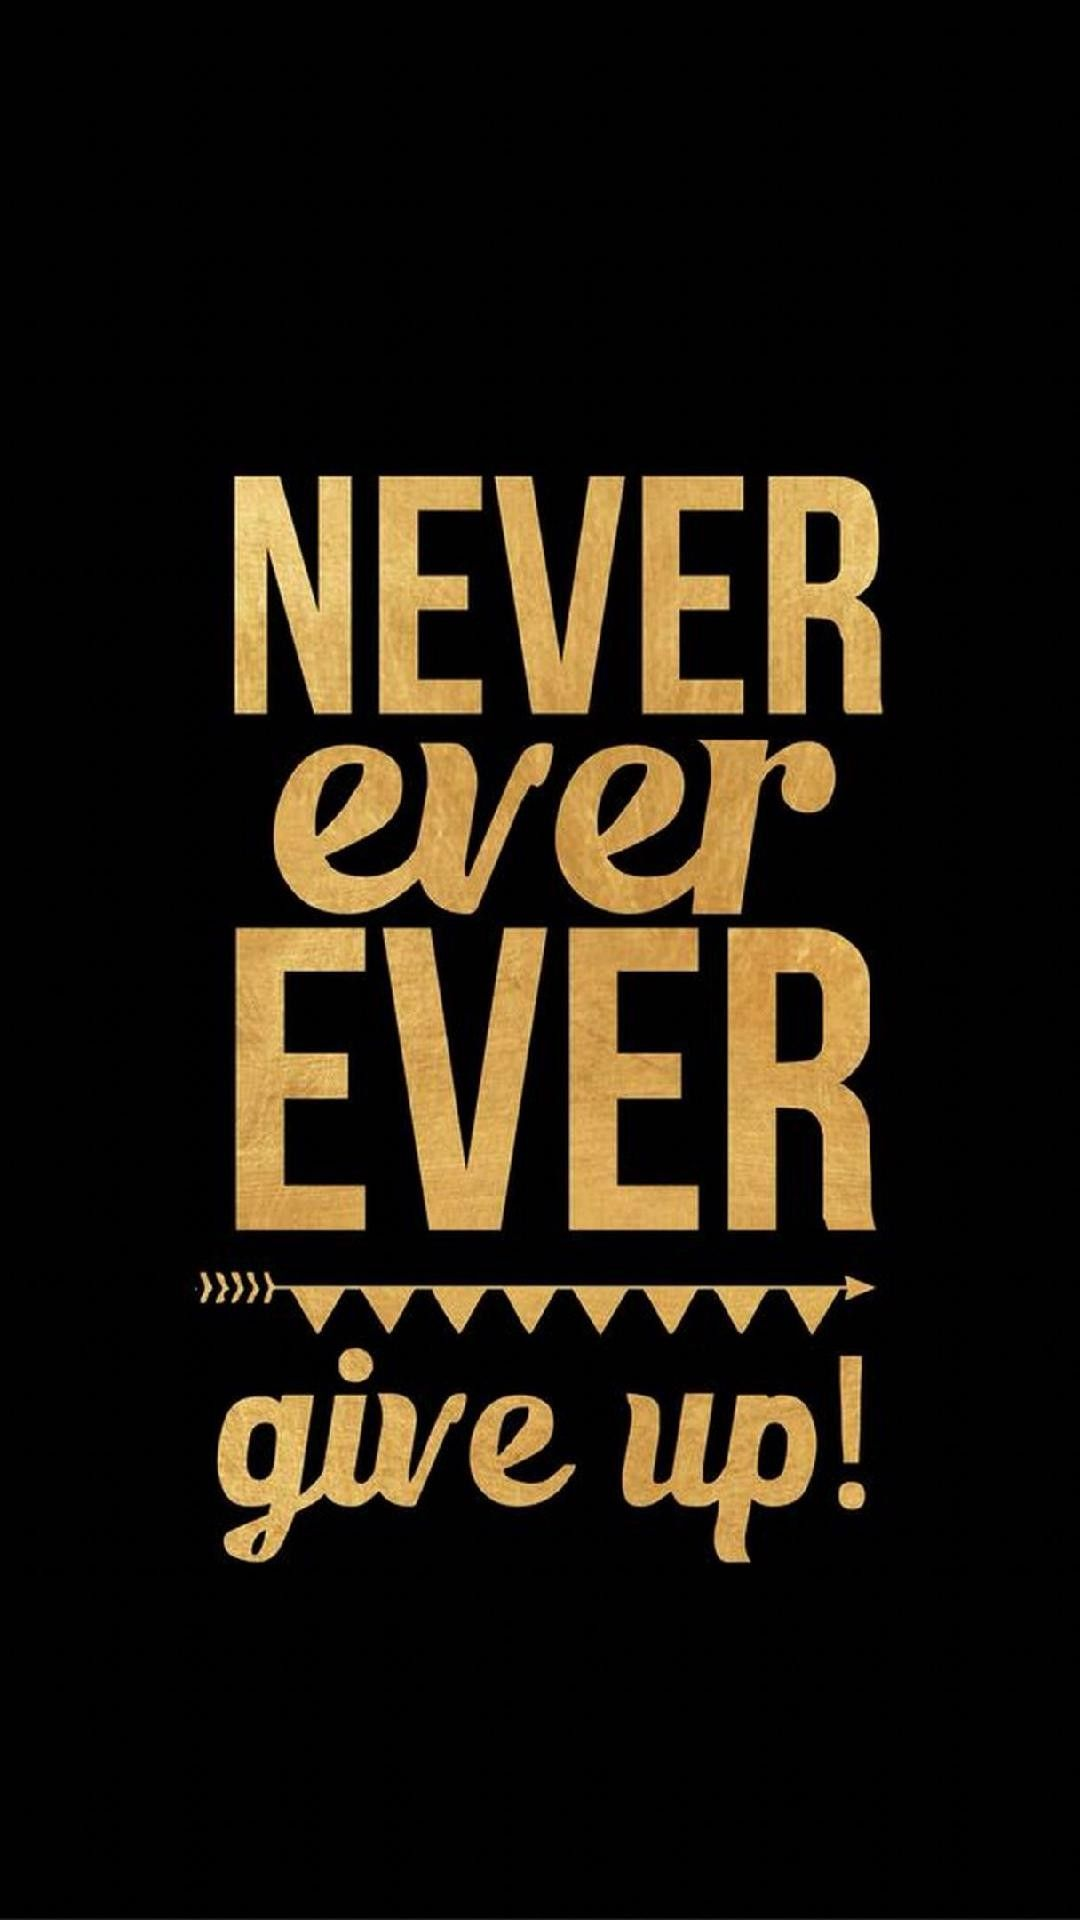 Pin By Tosif Khan On Never Give Up Gold Wallpaper Iphone Inspirational Quotes Gold Wallpaper